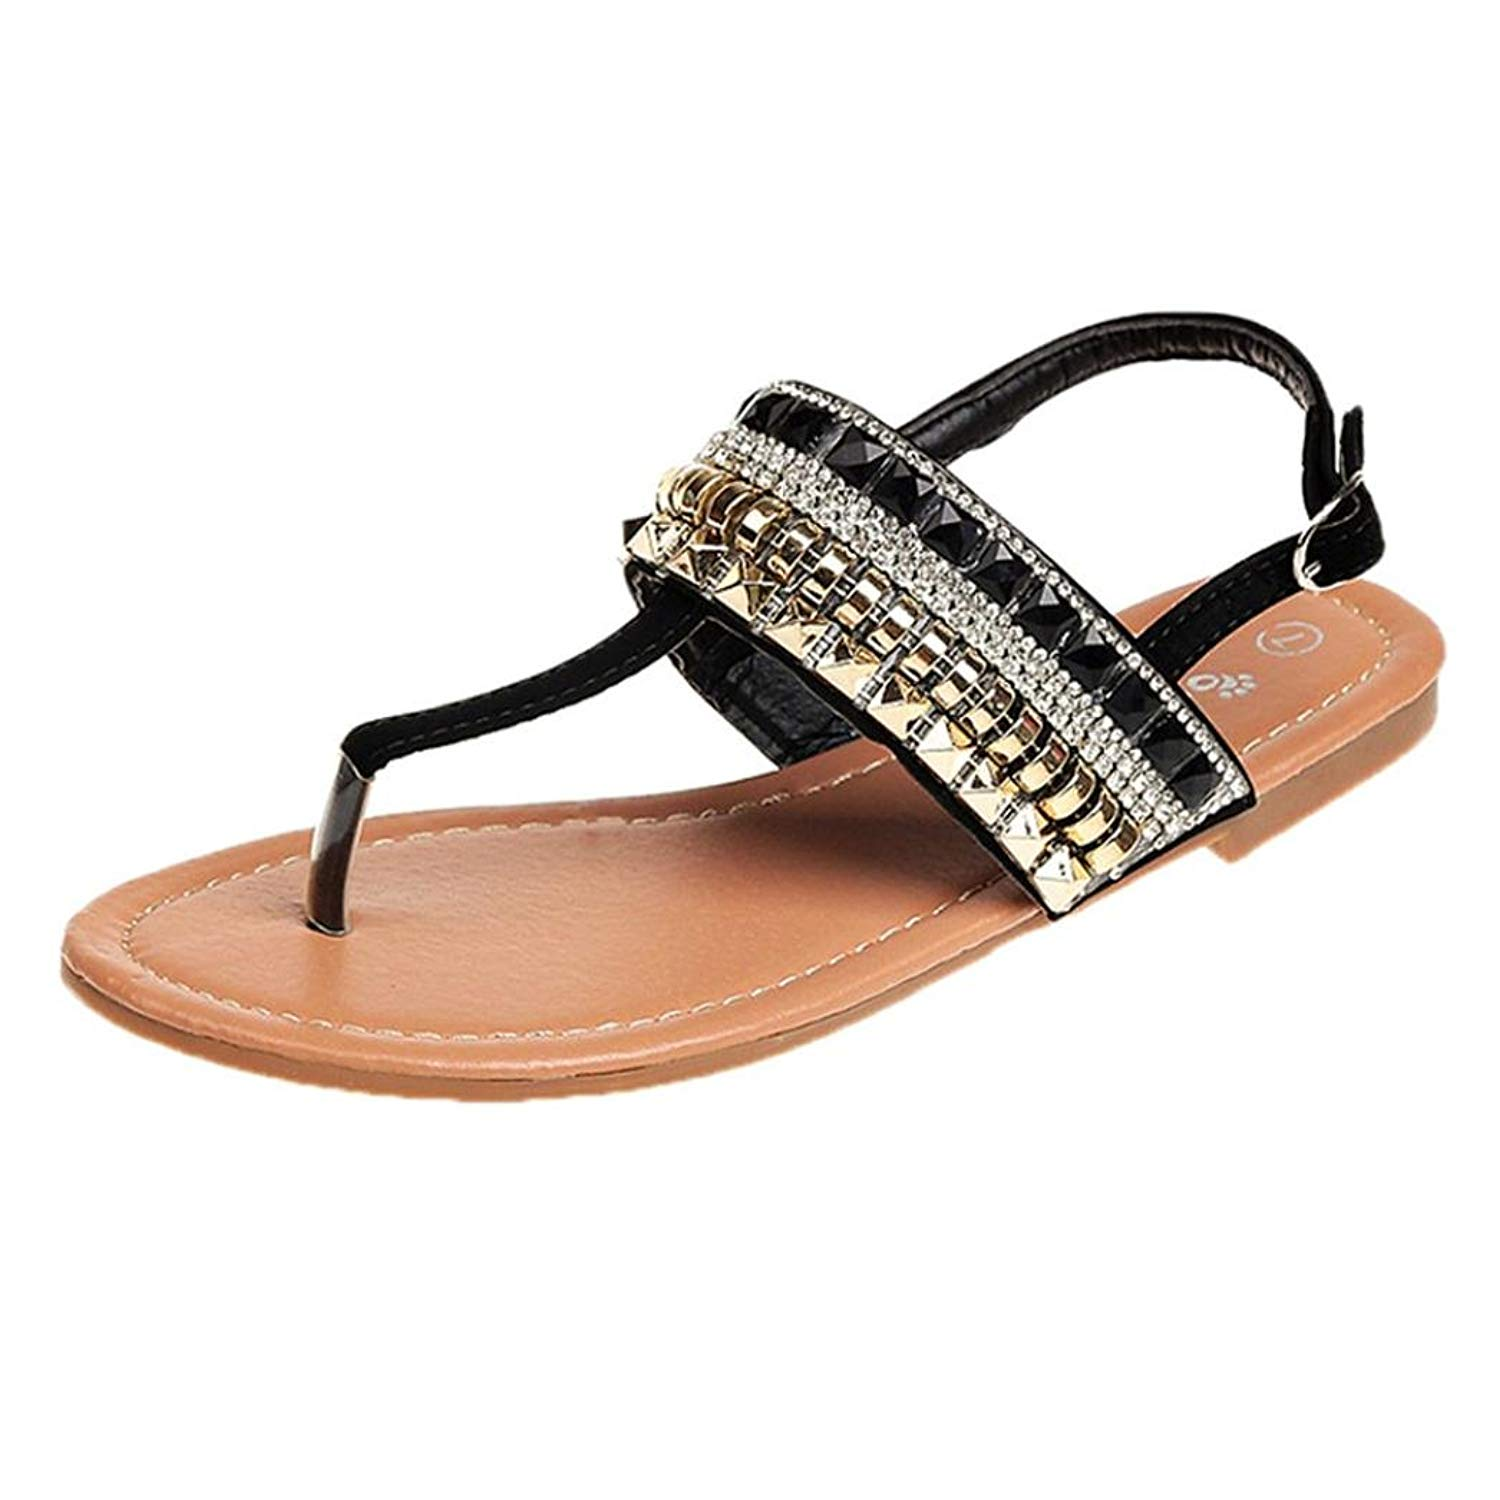 3e7a5eca9c5fe Get Quotations · Goodtrade8® Clearance ❤ Bohemia Sandal for Women